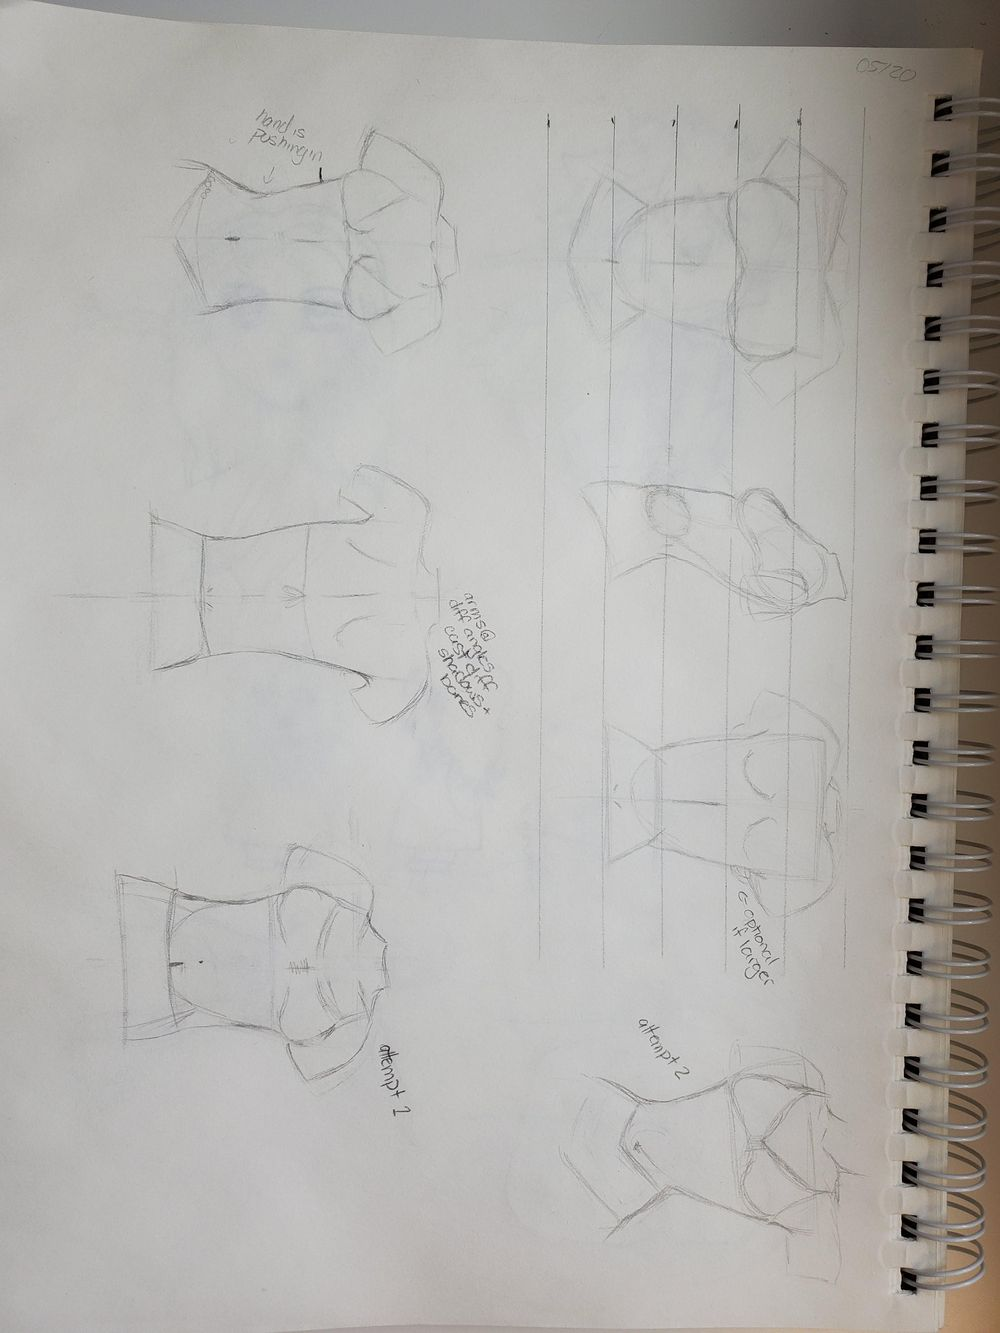 Torso Drawing - image 1 - student project